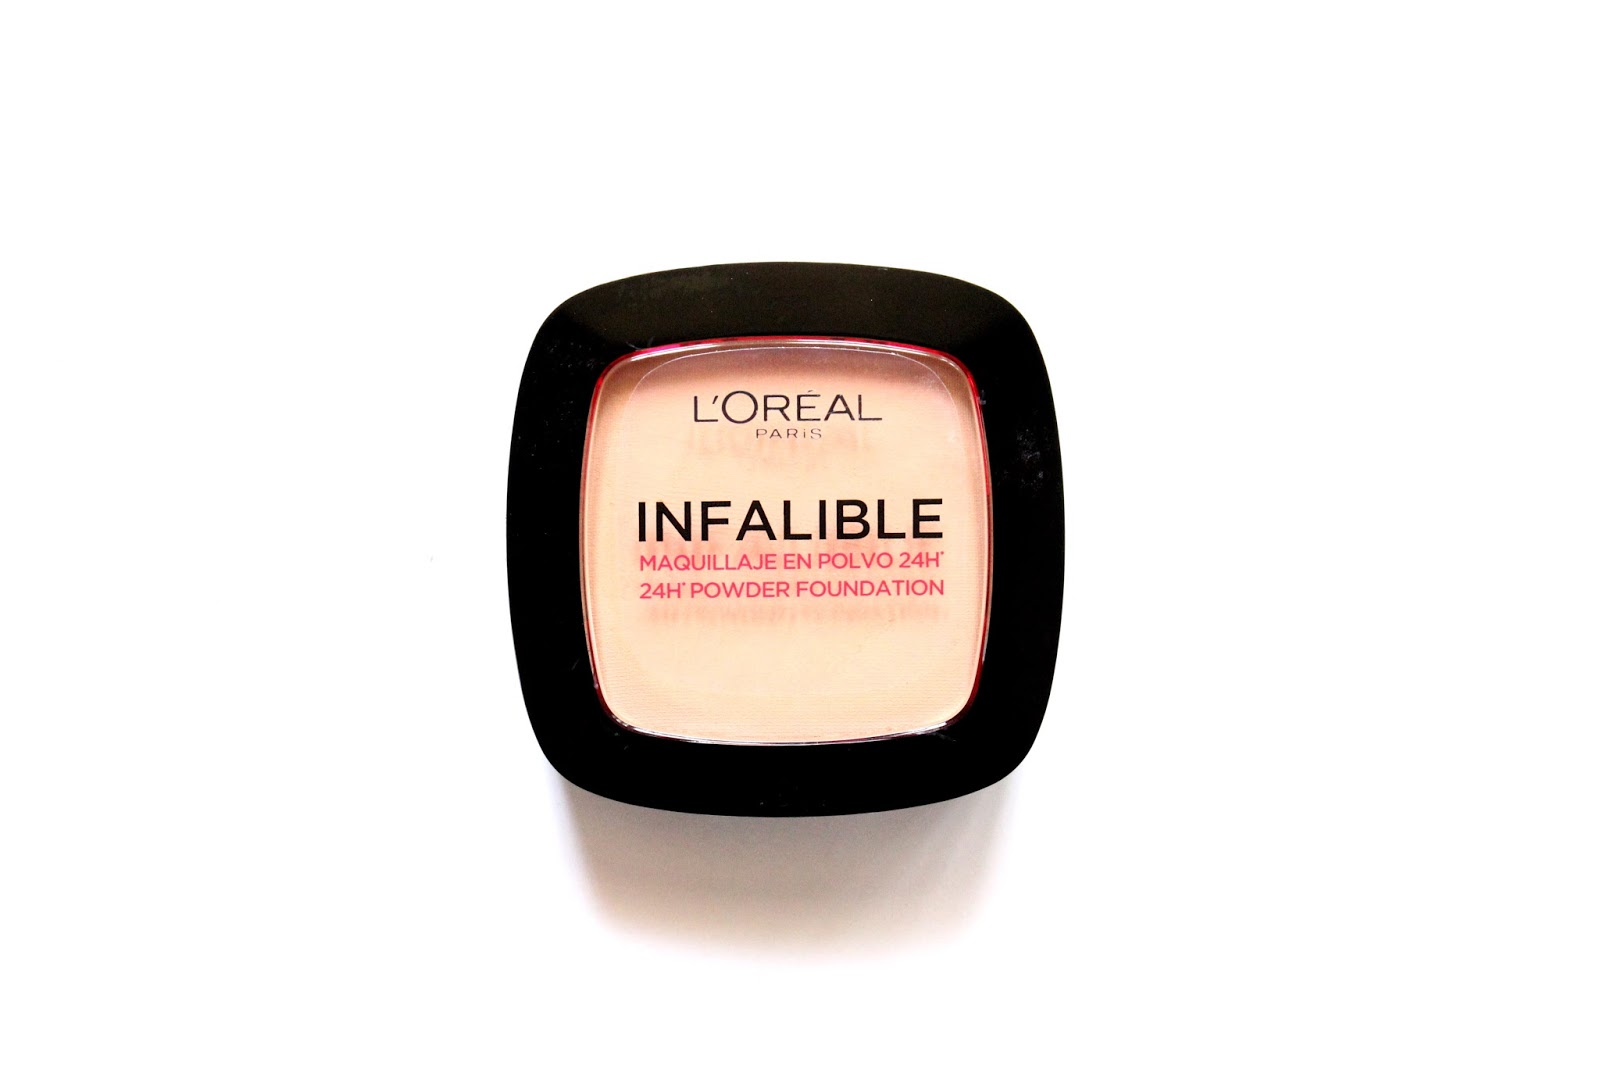 L'Oréal Paris Infallible 24H Reno Powder Foundation review, photos, price, buy online india